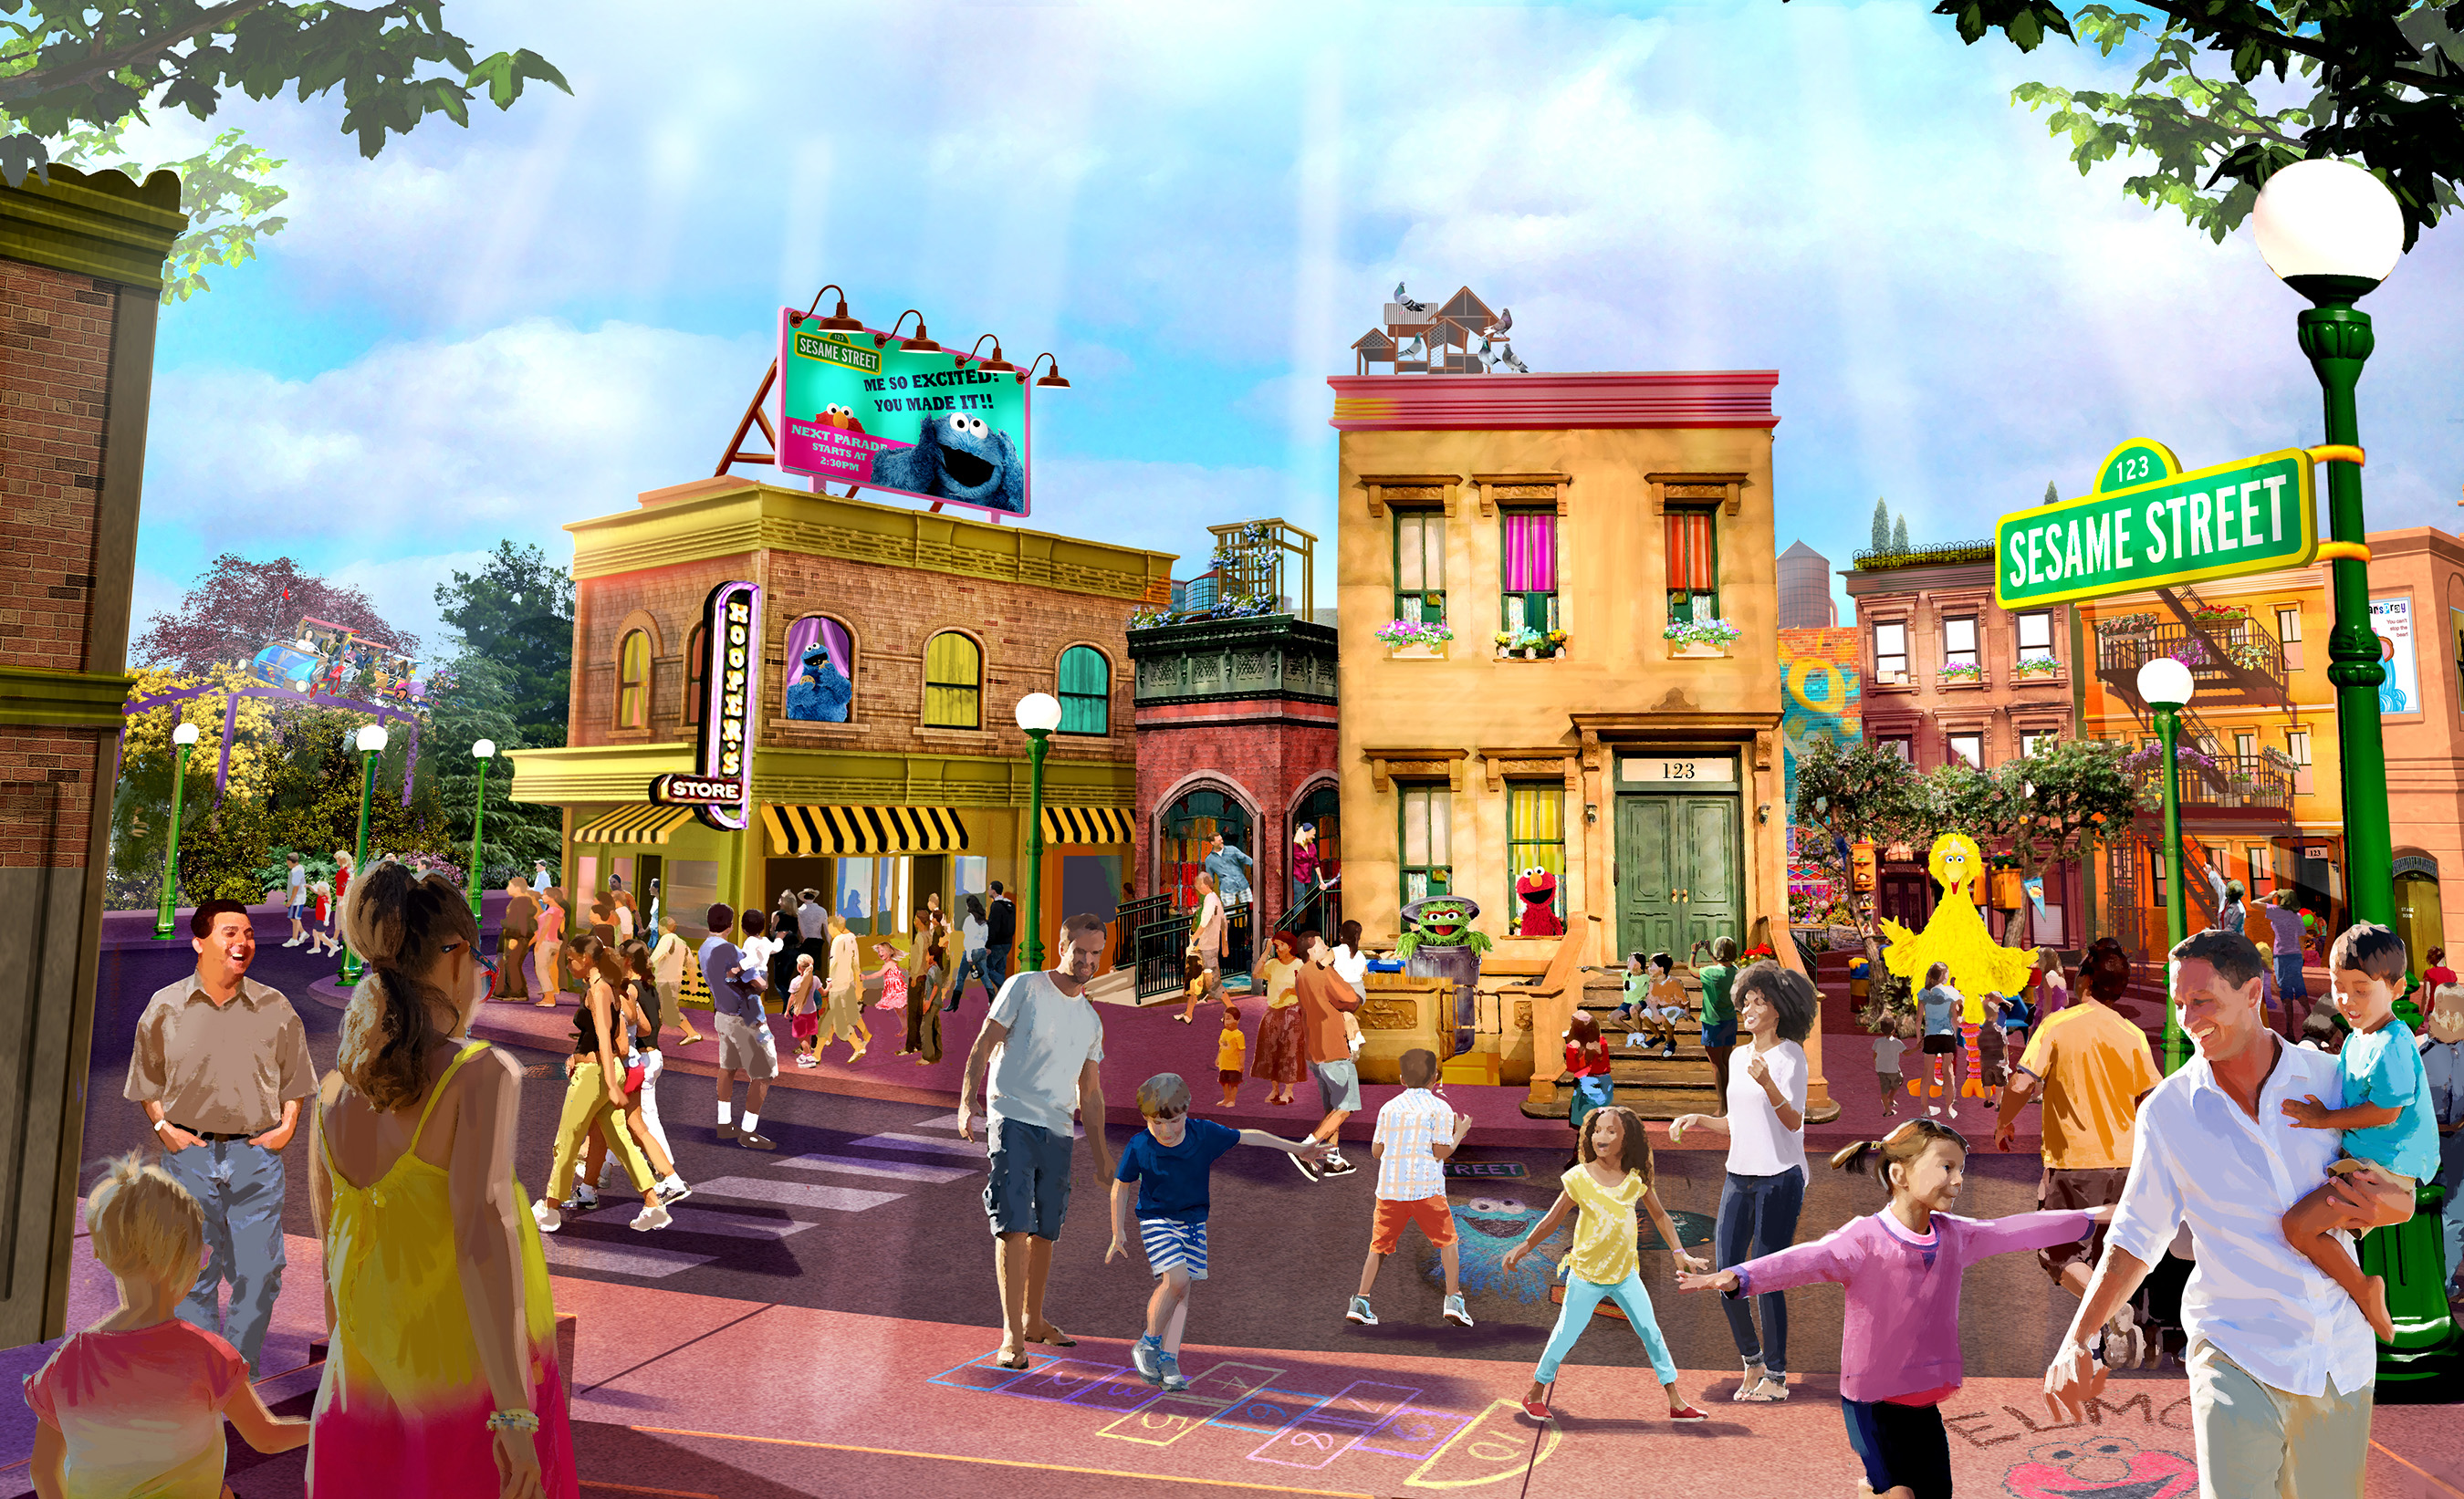 A new Sesame Street-themed land at SeaWorld Orlando is scheduled to open in spring 2019, complete with the iconic neighborhood, exciting rides, a parade and more.